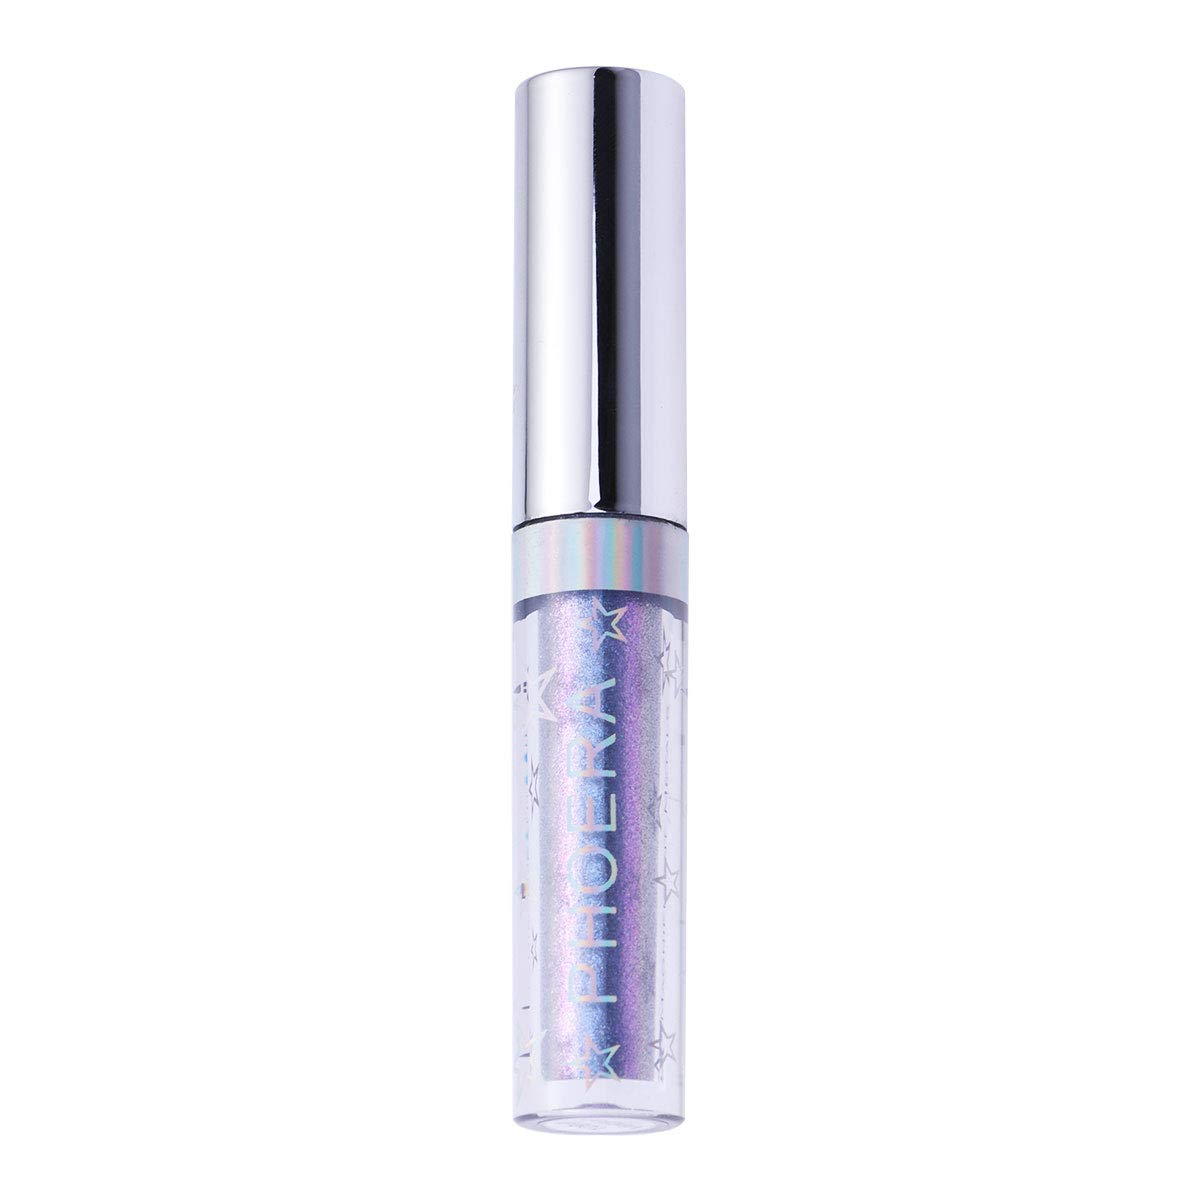 Frcolor Magnificent Metals Glitter Glow Liquid Mineral Eyeshadow Makeup Pearlescent Eyeshadow (109 viridian)